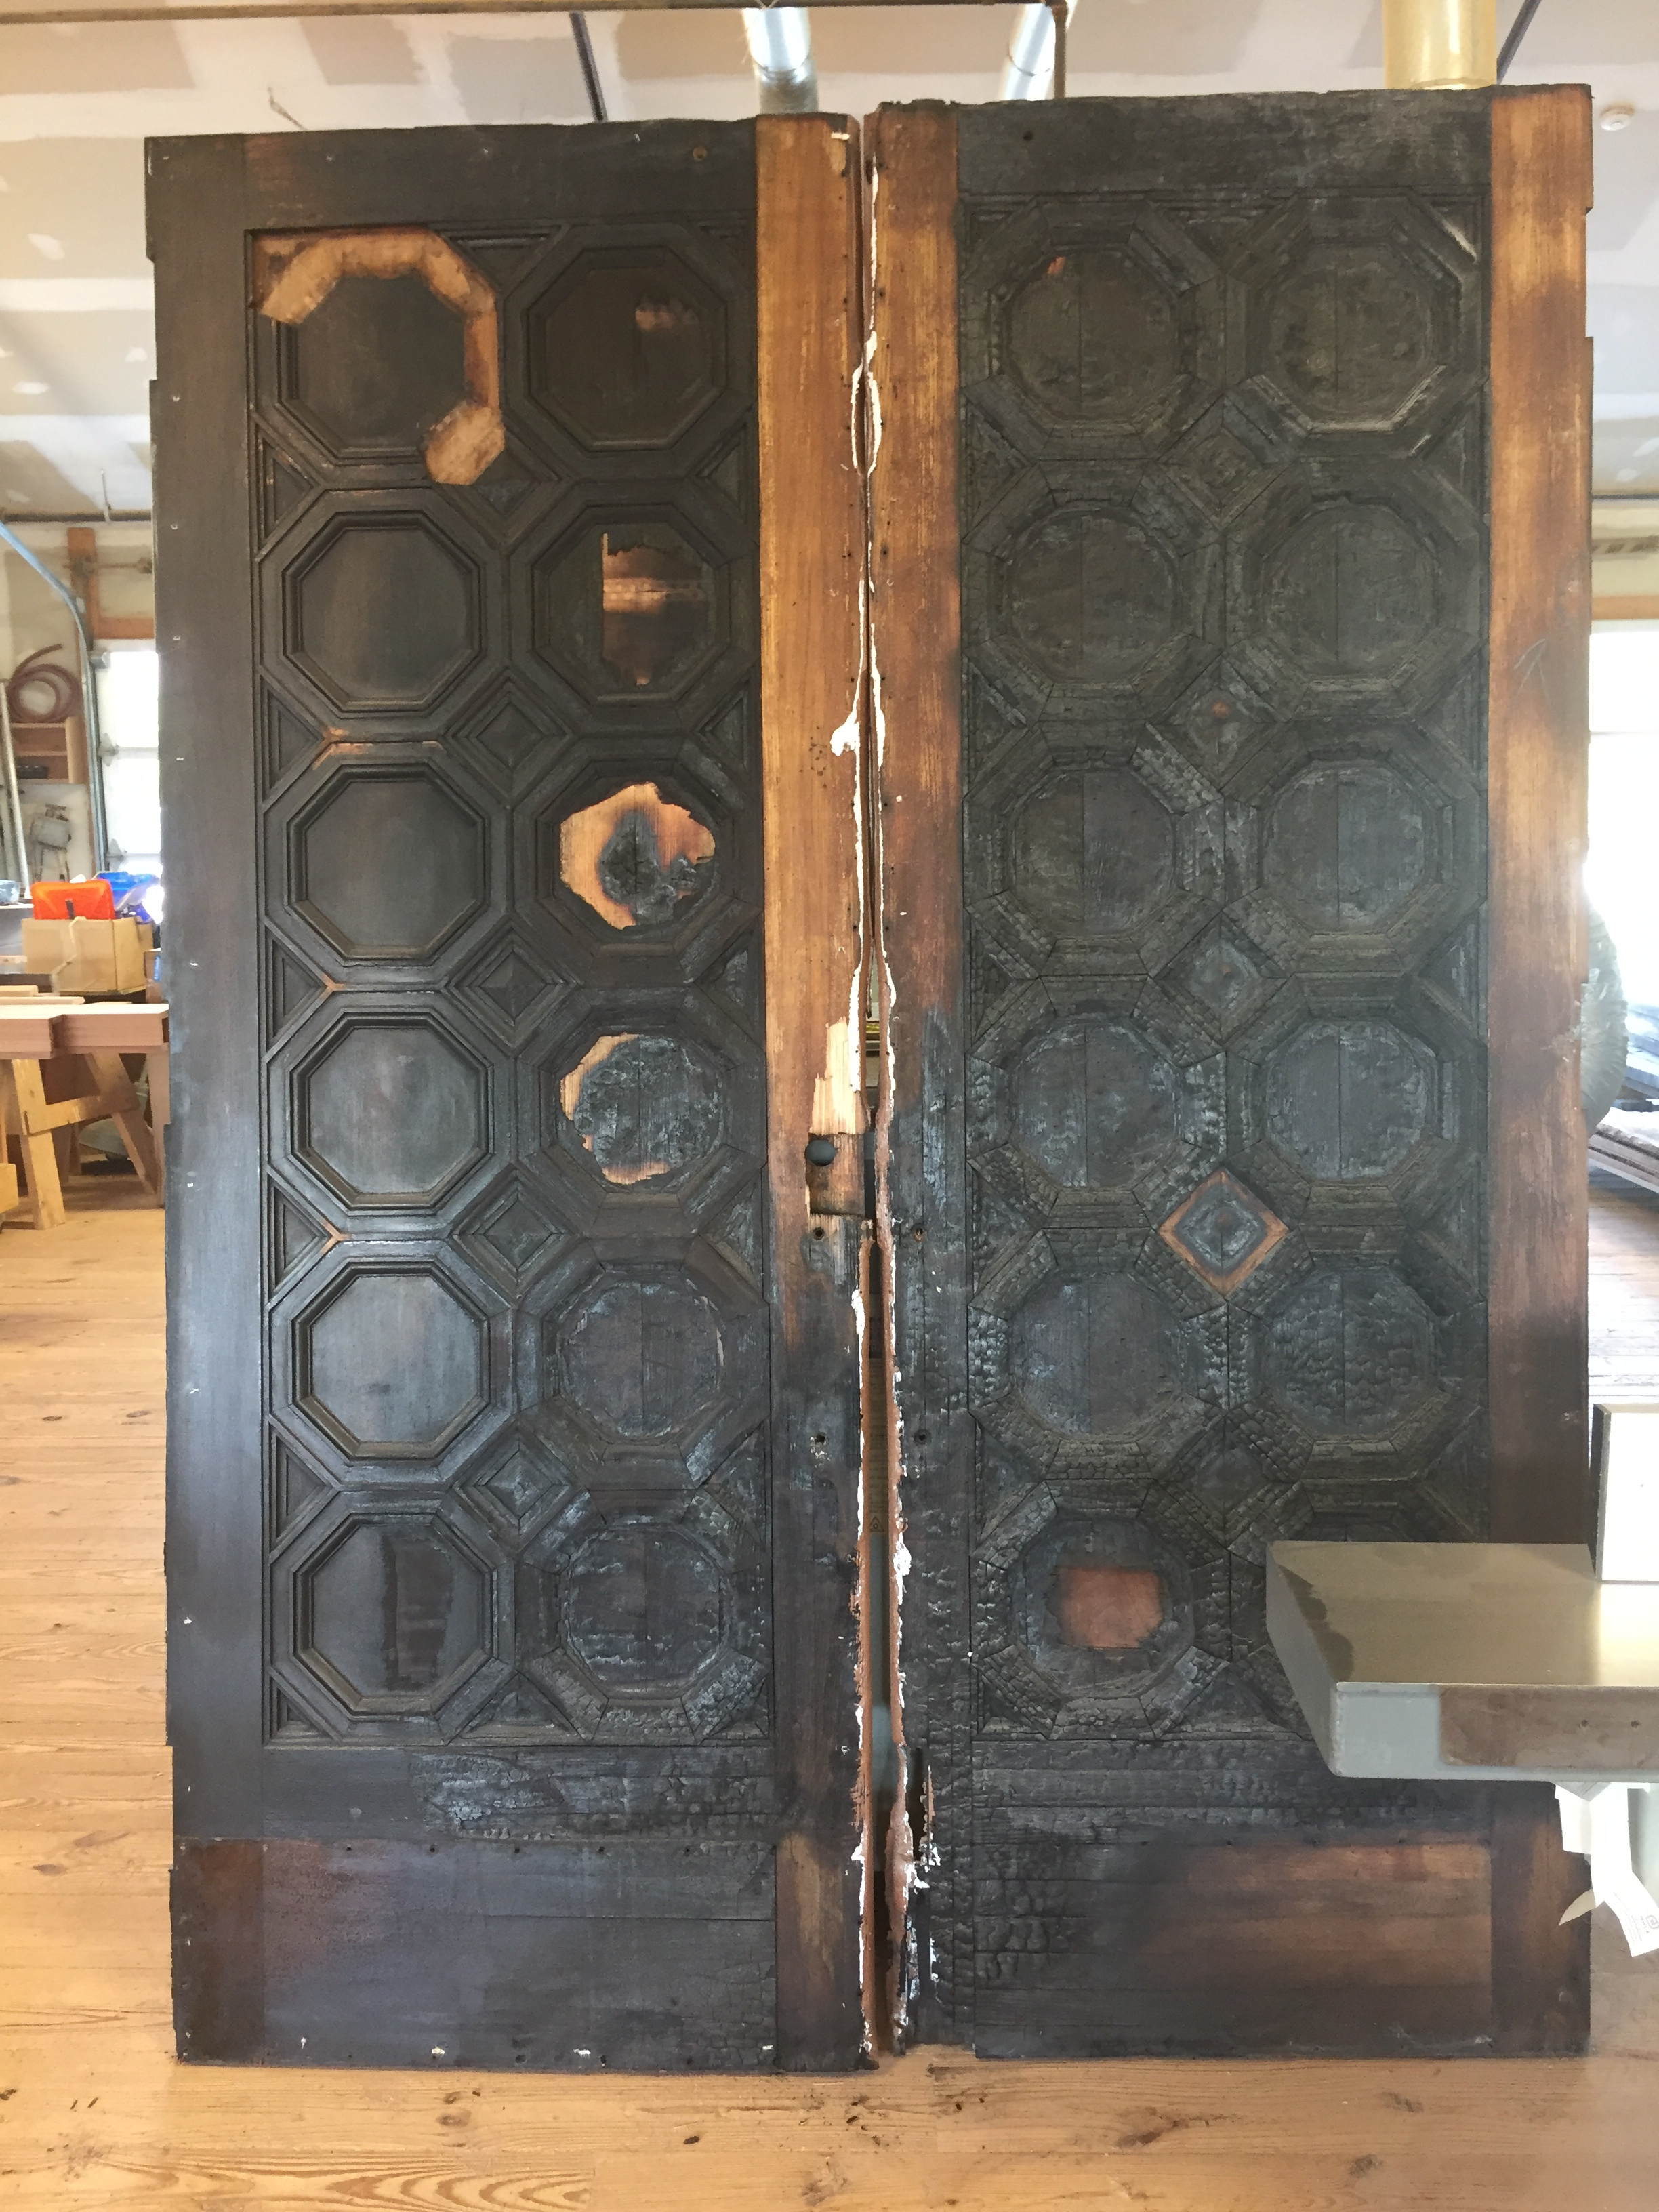 THE ORIGINAL bURNT dOORS